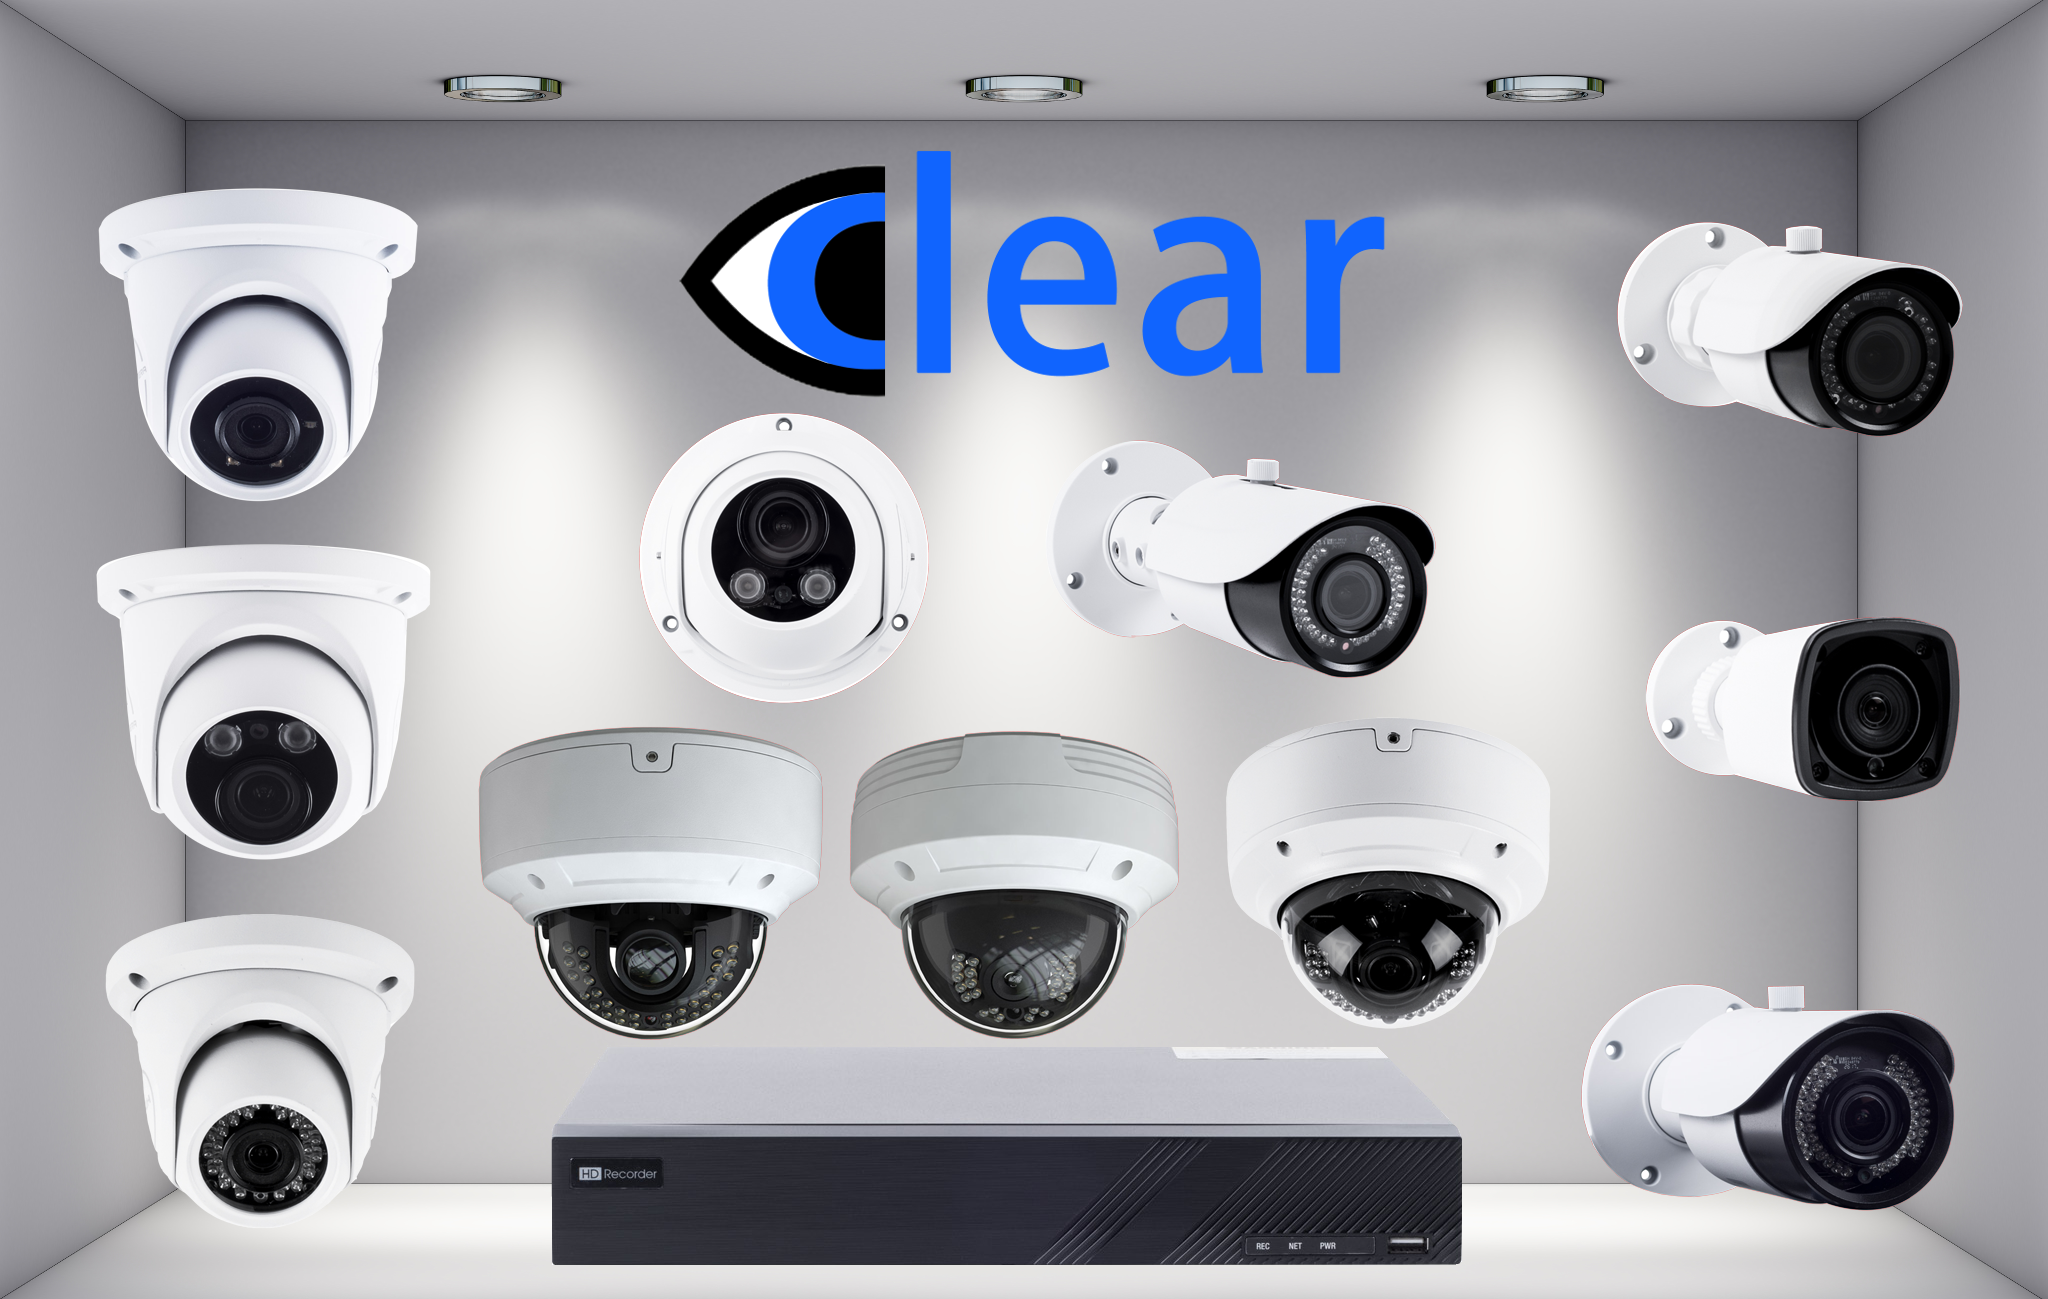 Clear Dome Cameras